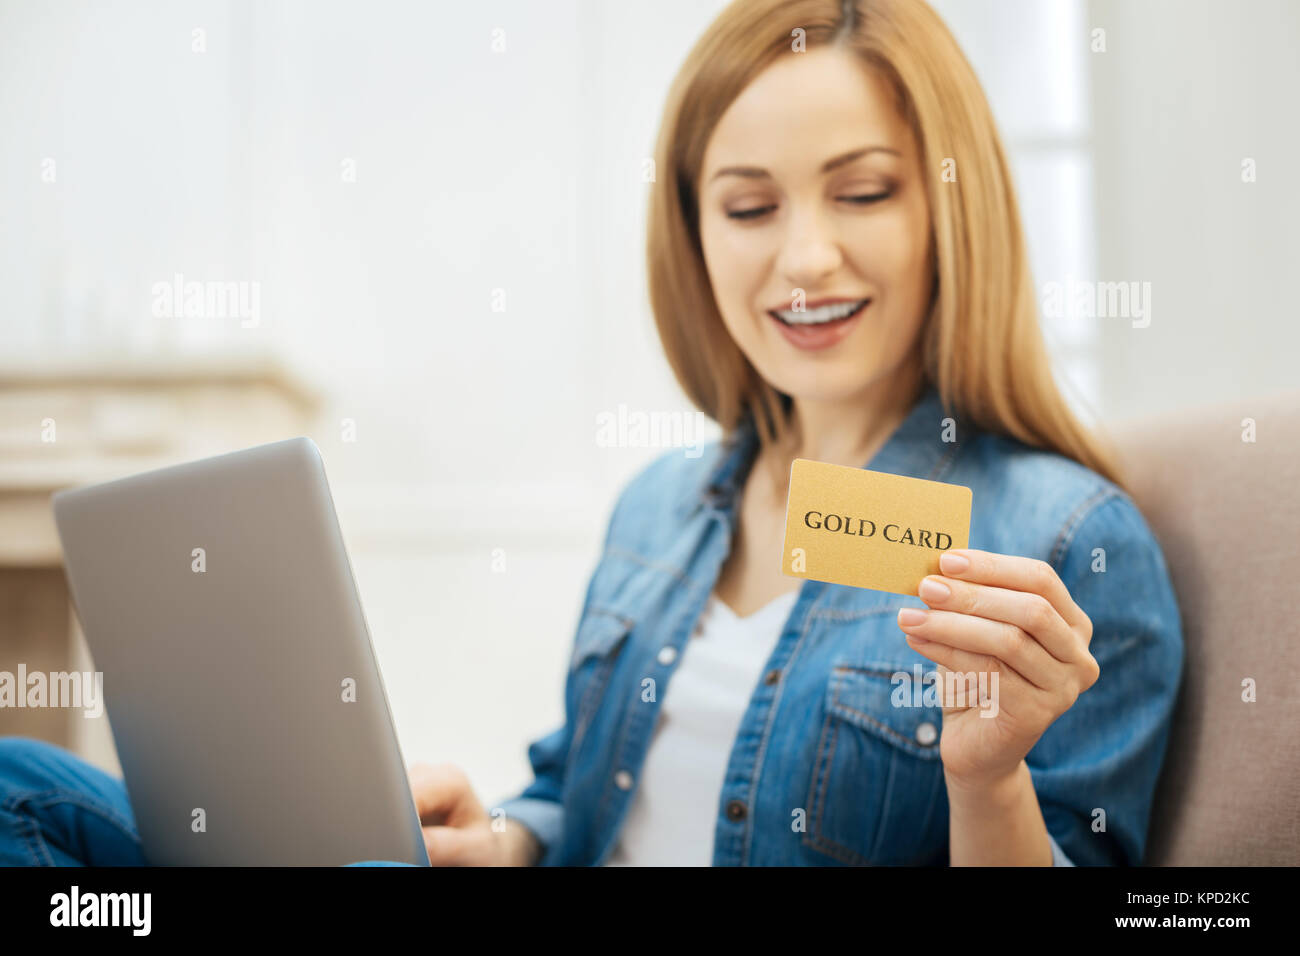 Femme alerte à la carte gold à son Photo Stock